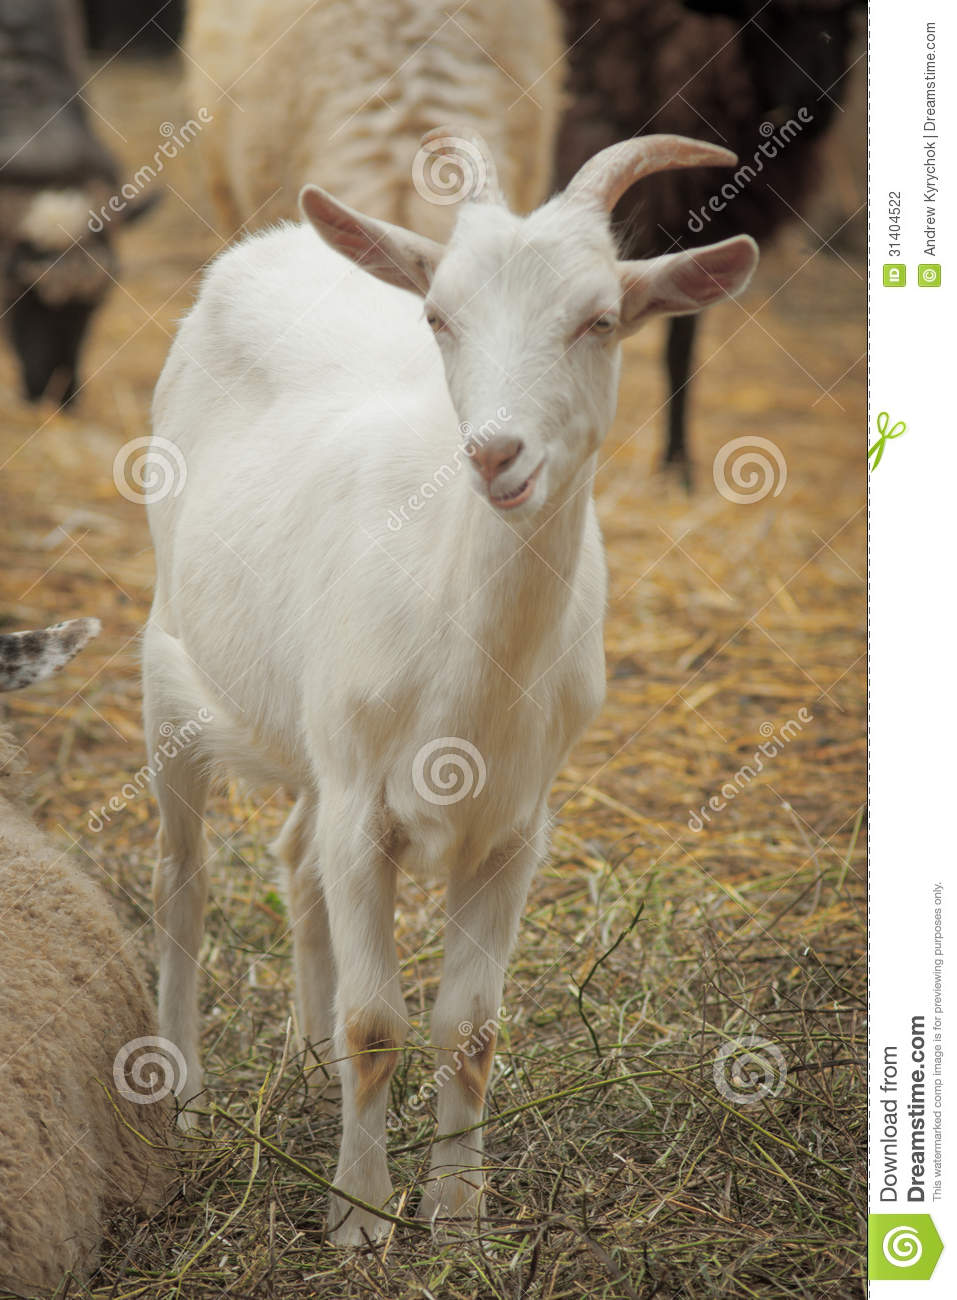 funny looking goat - photo #7